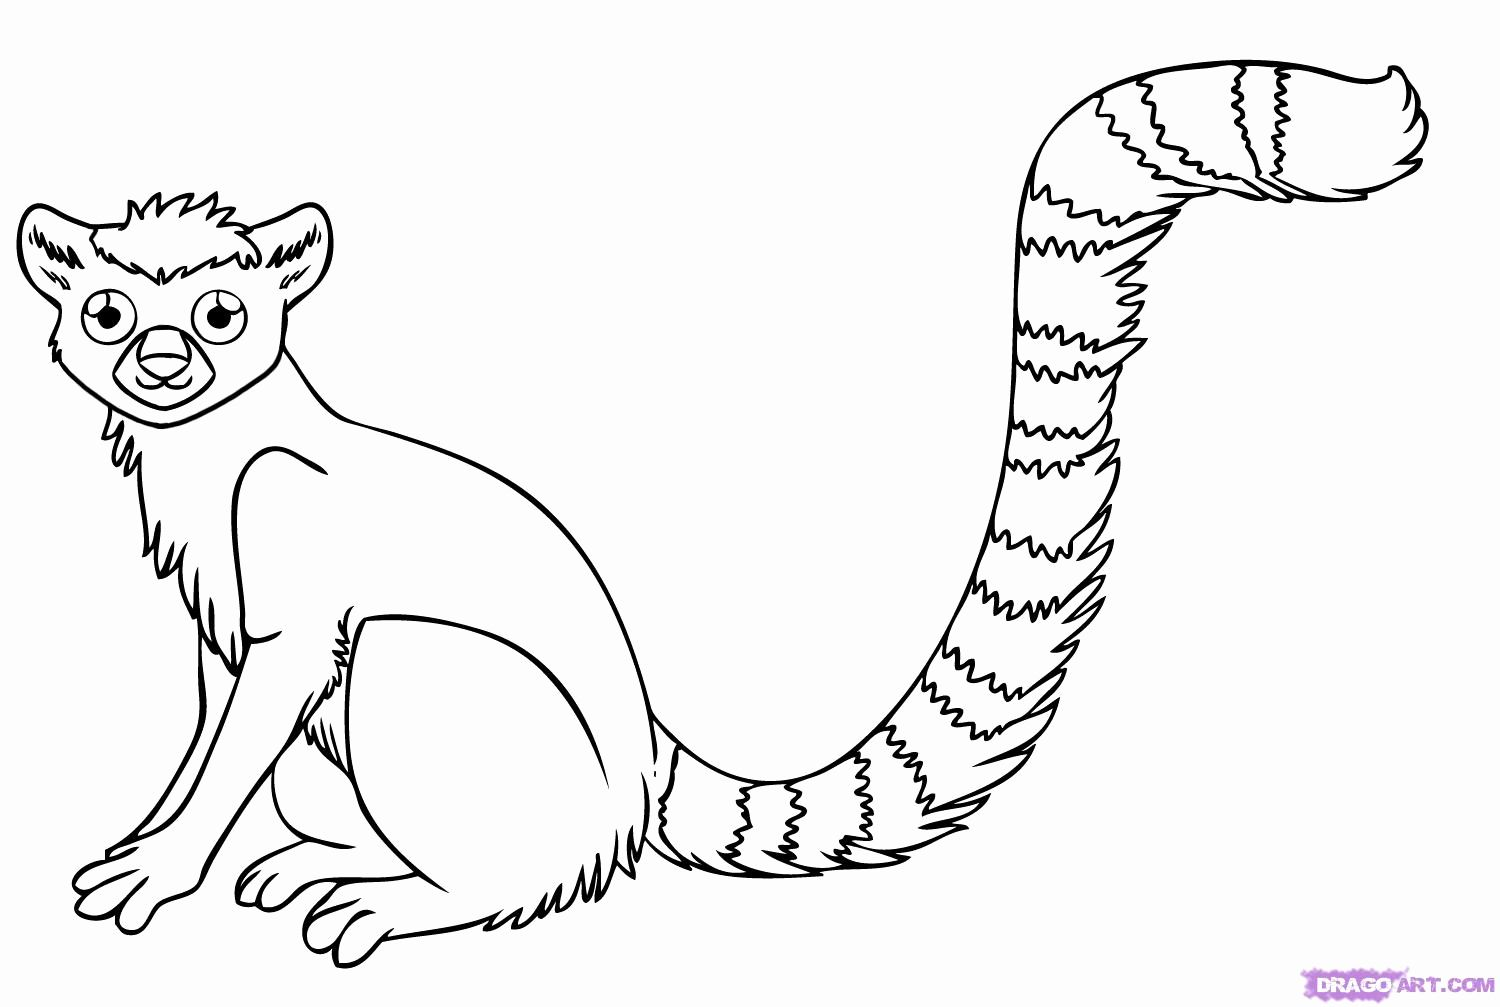 Rainforest Animal Coloring Pages Inspirational Realistic Rainforest Monkey Clipart Clipart In 2020 Rainforest Animals For Kids Animal Coloring Pages Rainforest Animals